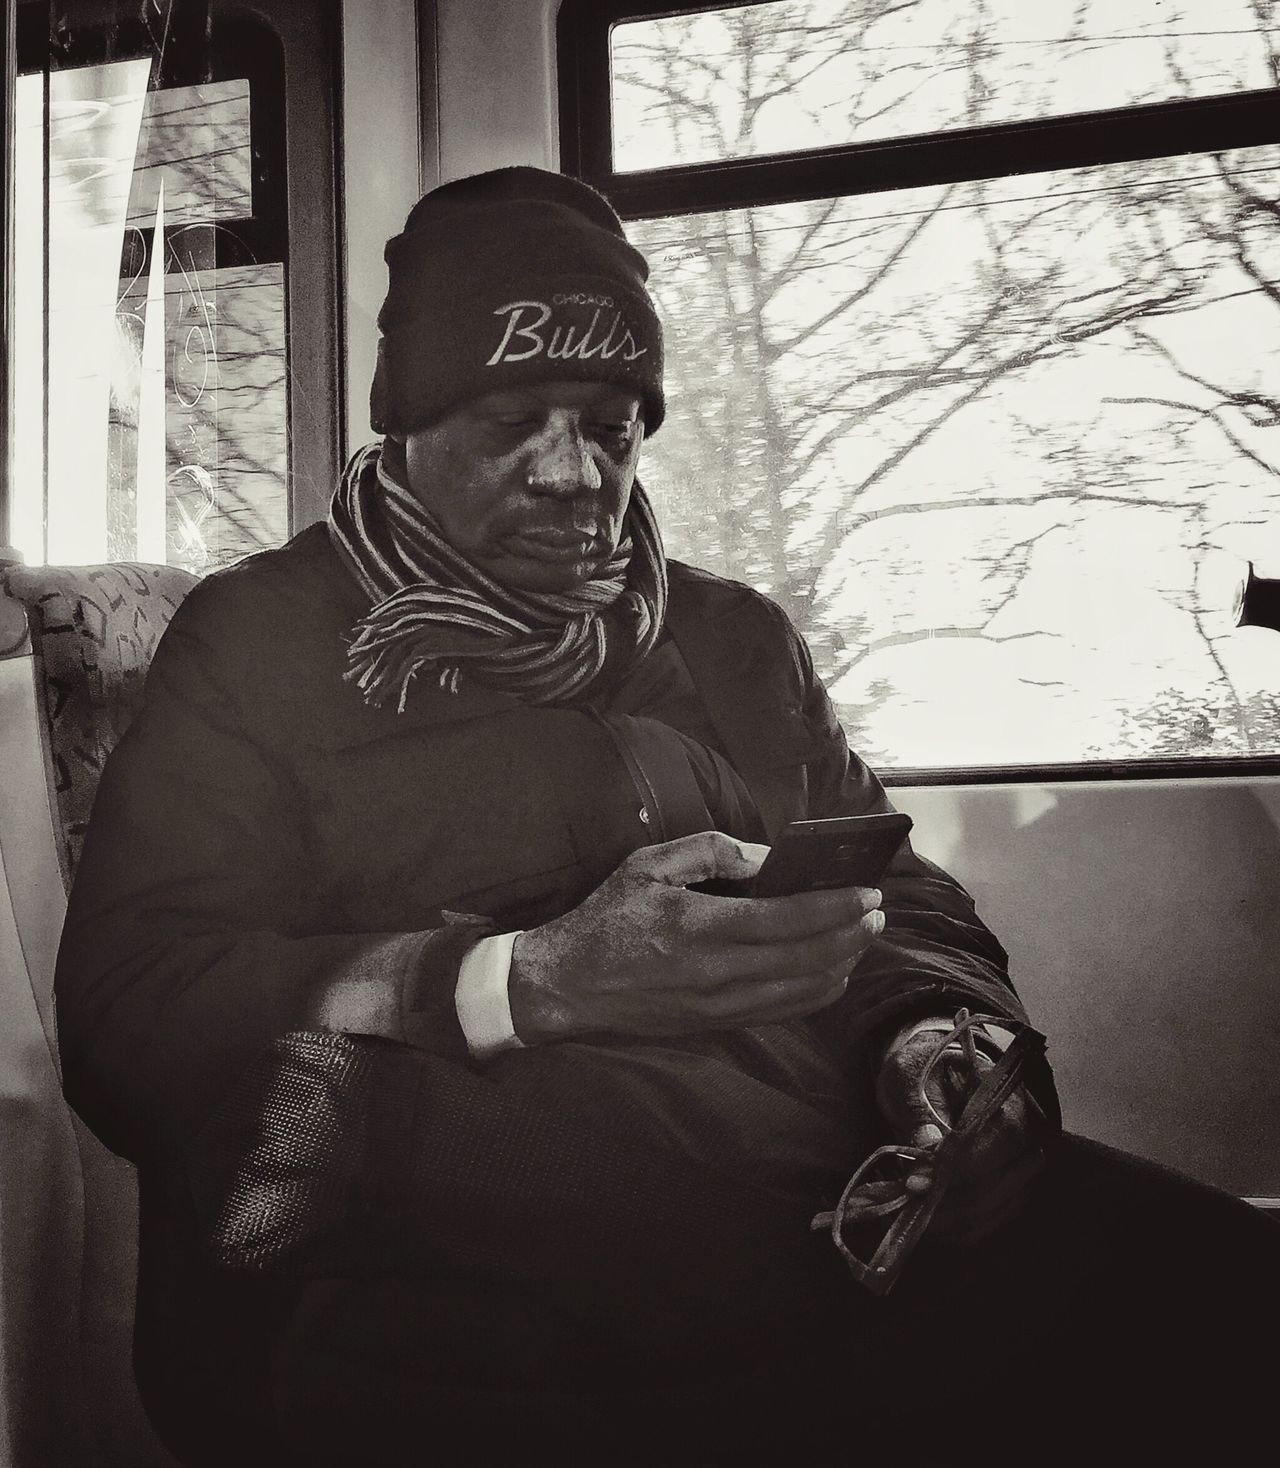 Streetportrait Streetphotography Myfuckingberlin Berlin Bnw Blackandwhite Iphone6 Mpro Mobilephotography